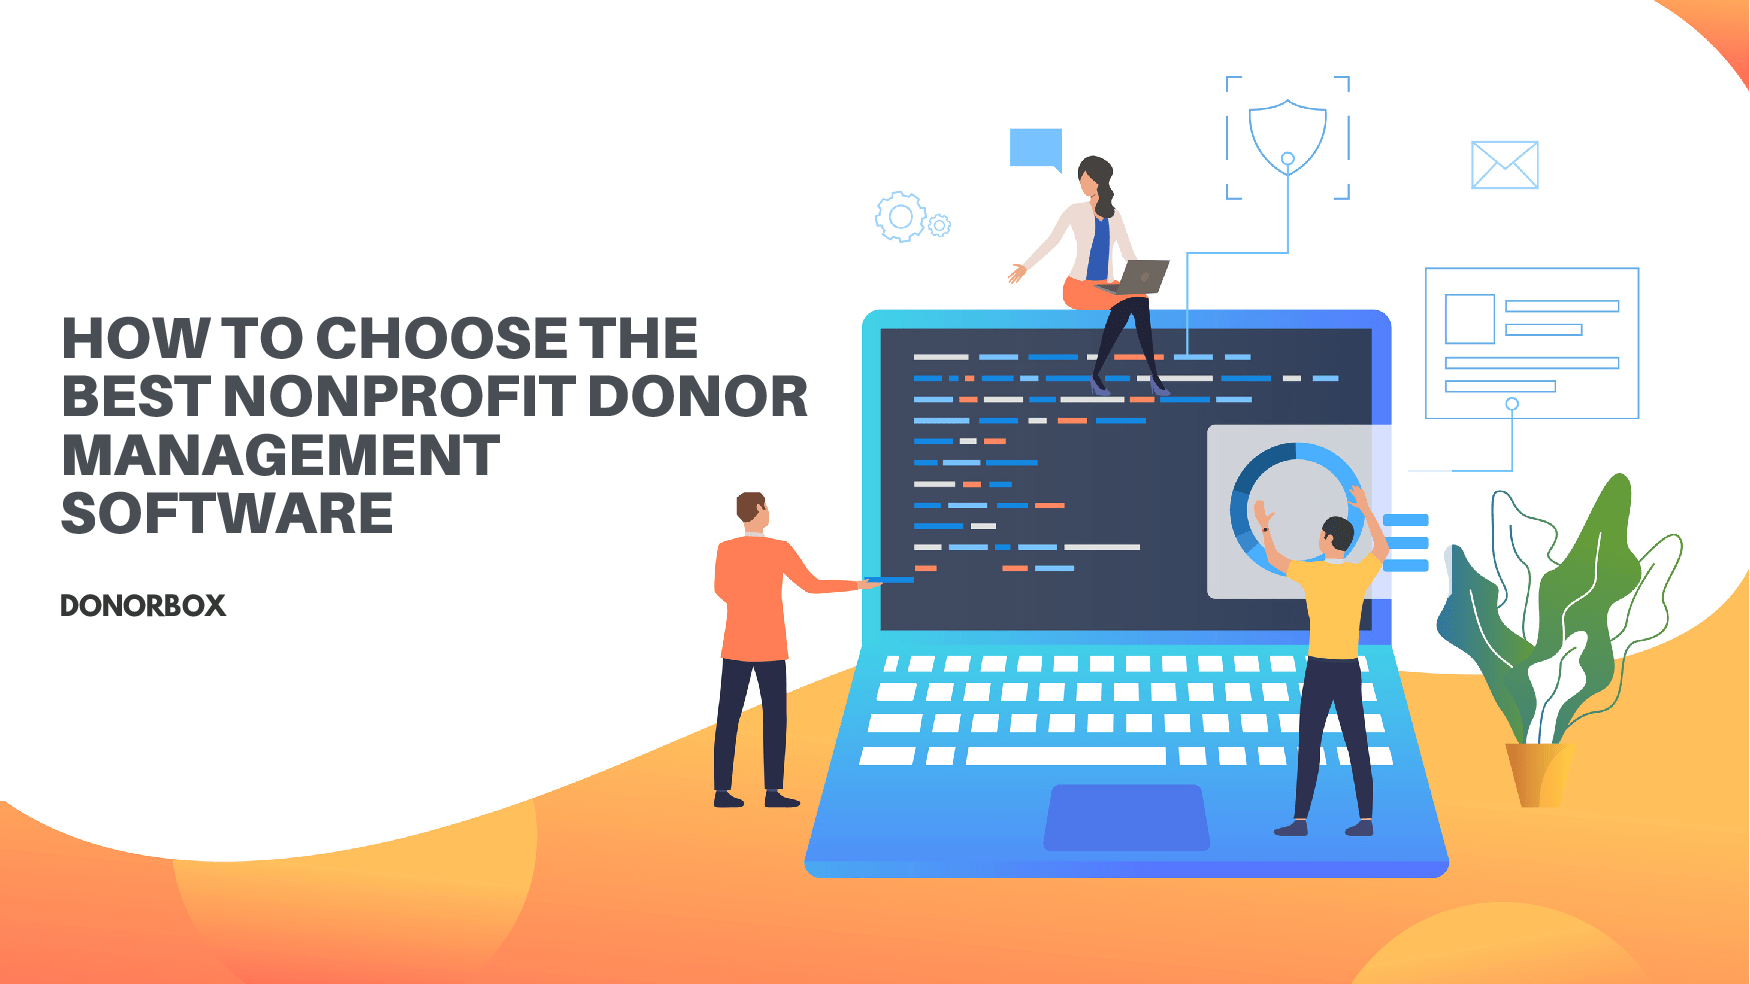 How to Choose the Best Nonprofit Donor Management Software